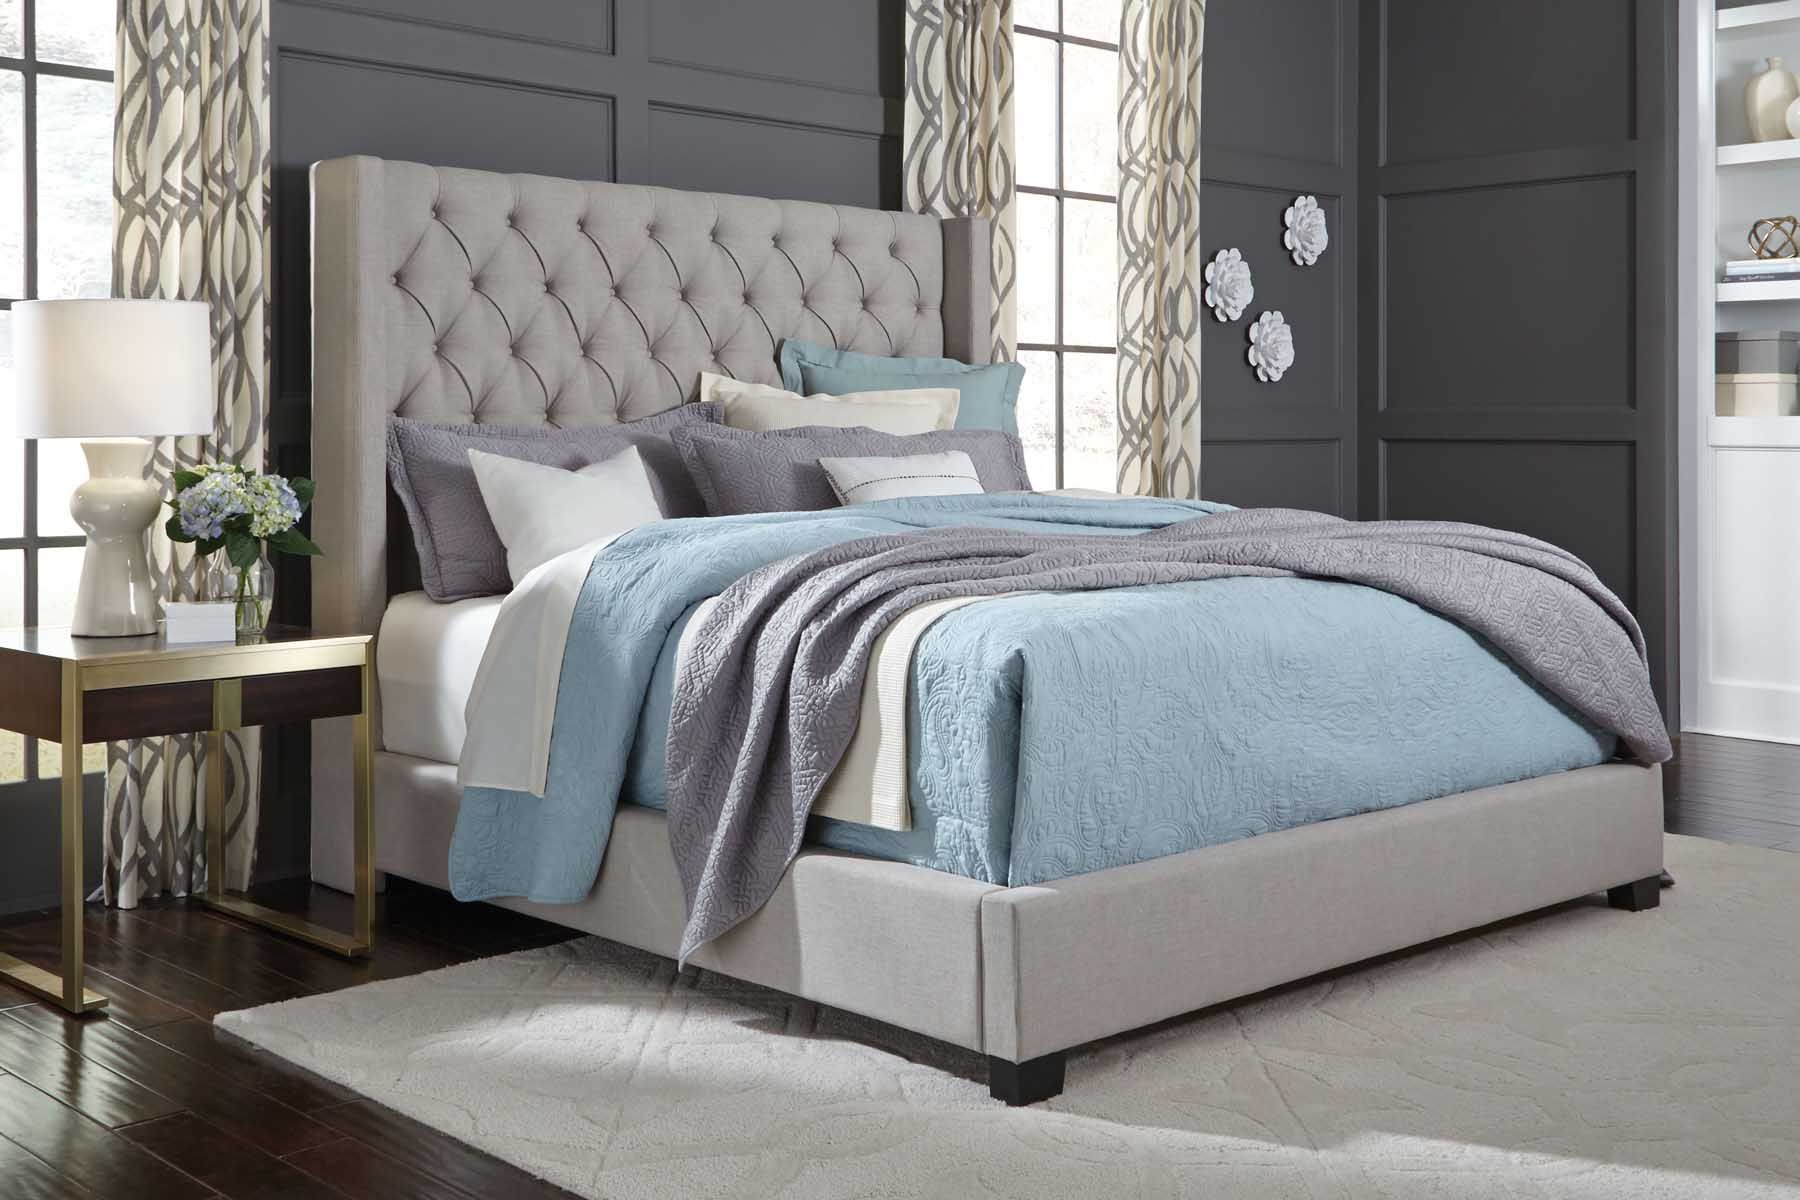 Grey Westerly Queen BedThis grand upholstered bed will be